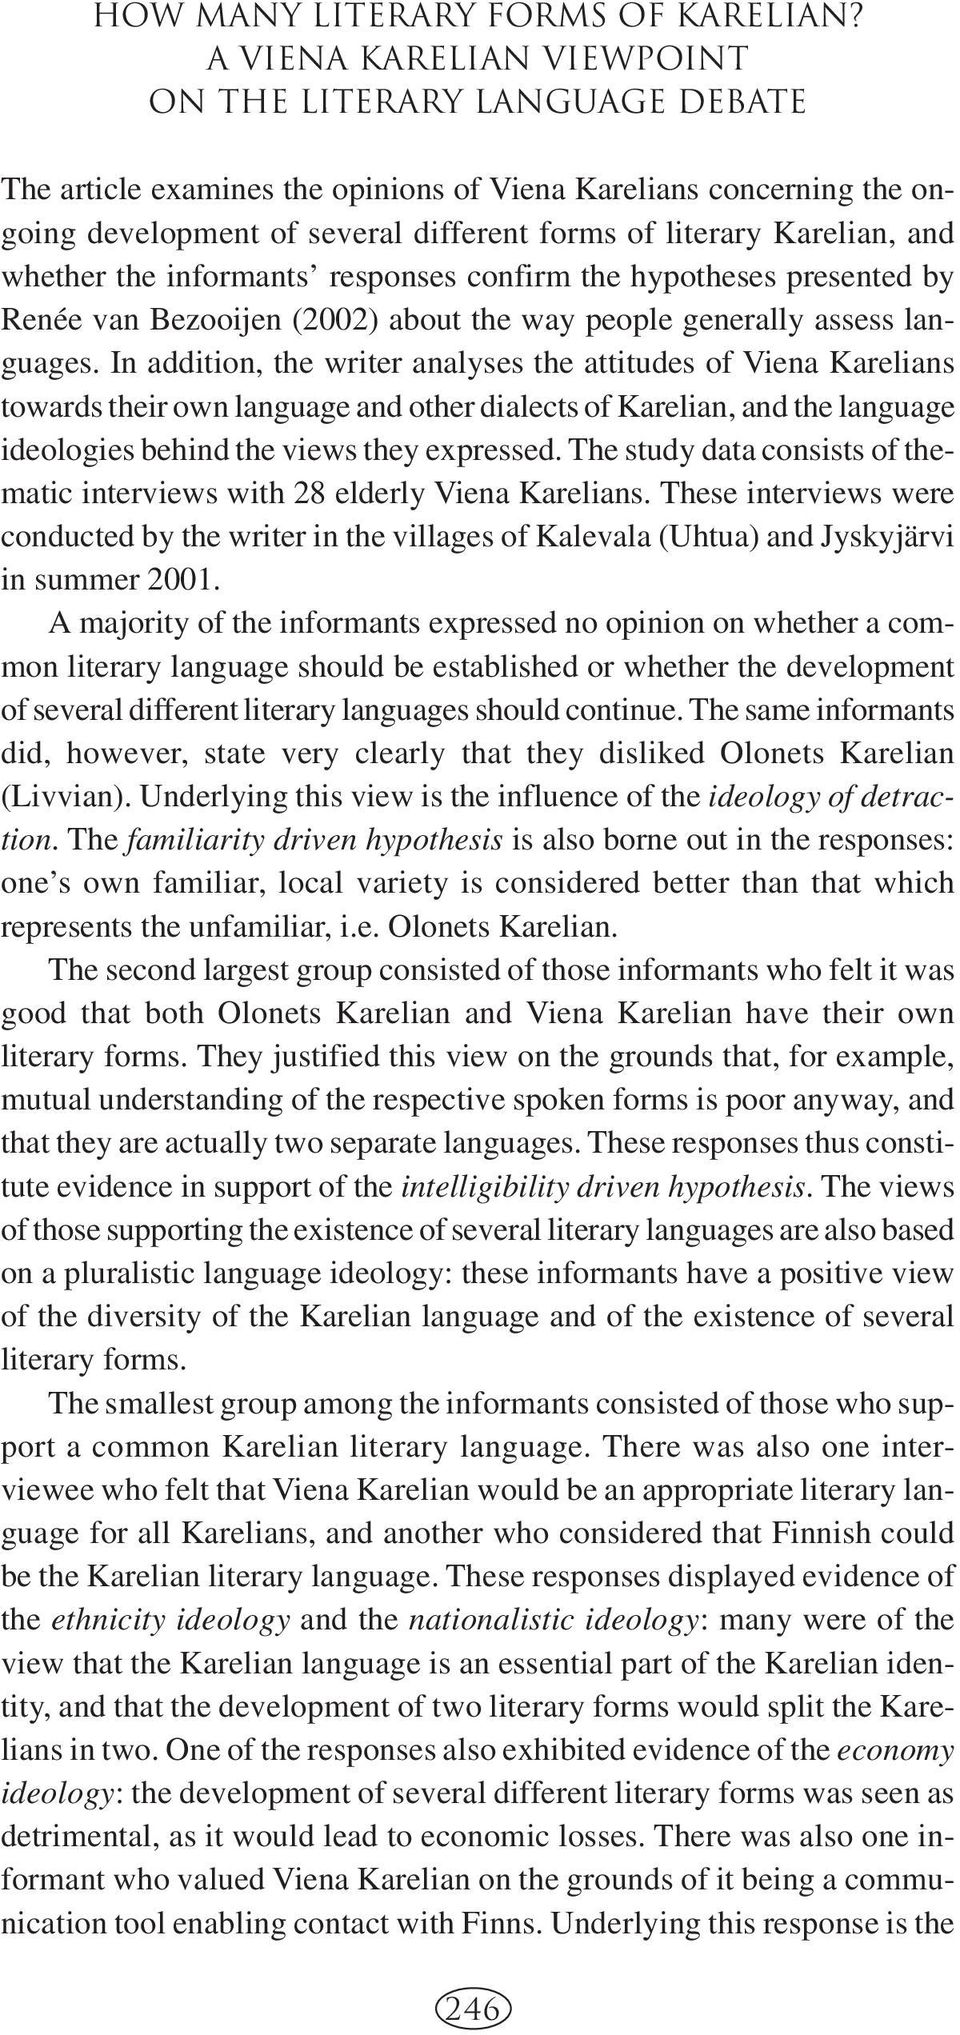 whether the informants responses confirm the hypotheses presented by Renée van Bezooijen (2002) about the way people generally assess languages.